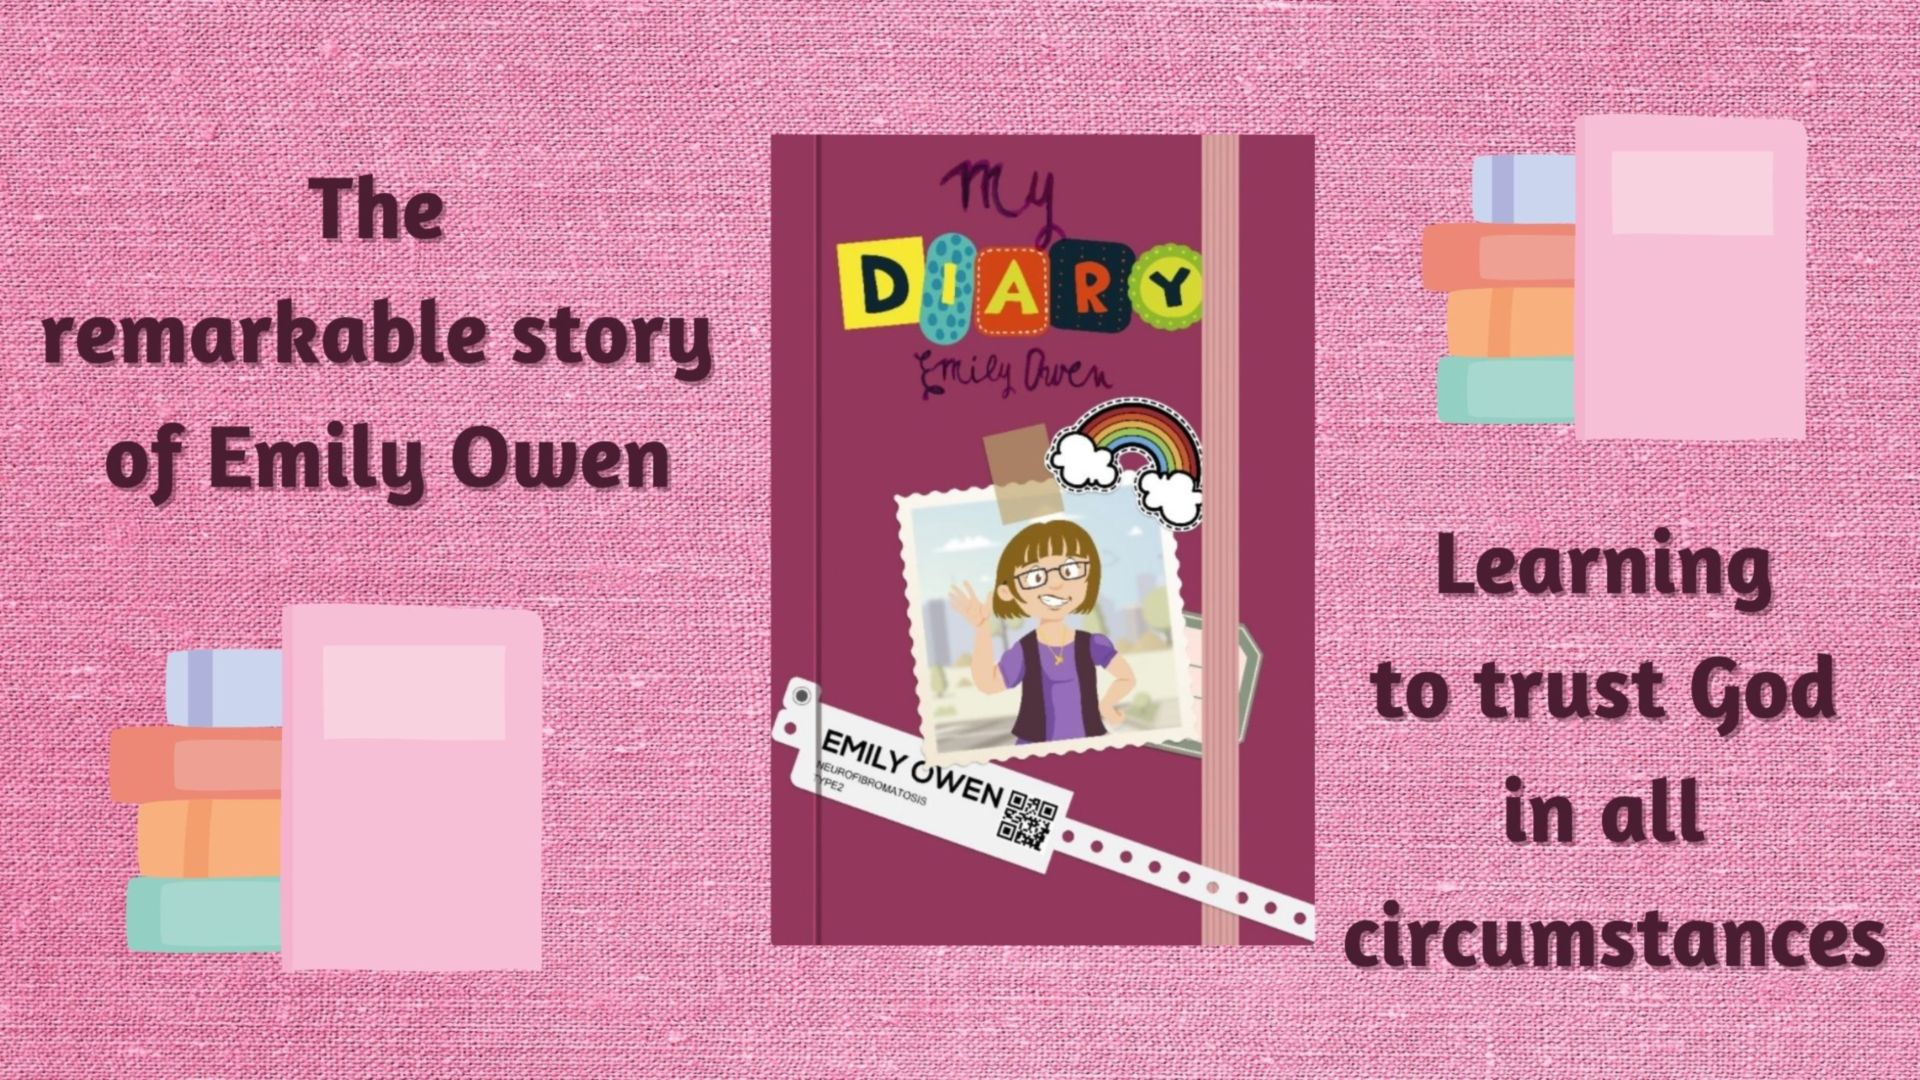 Interview with Emily Owen about her own story in 'My Diary'